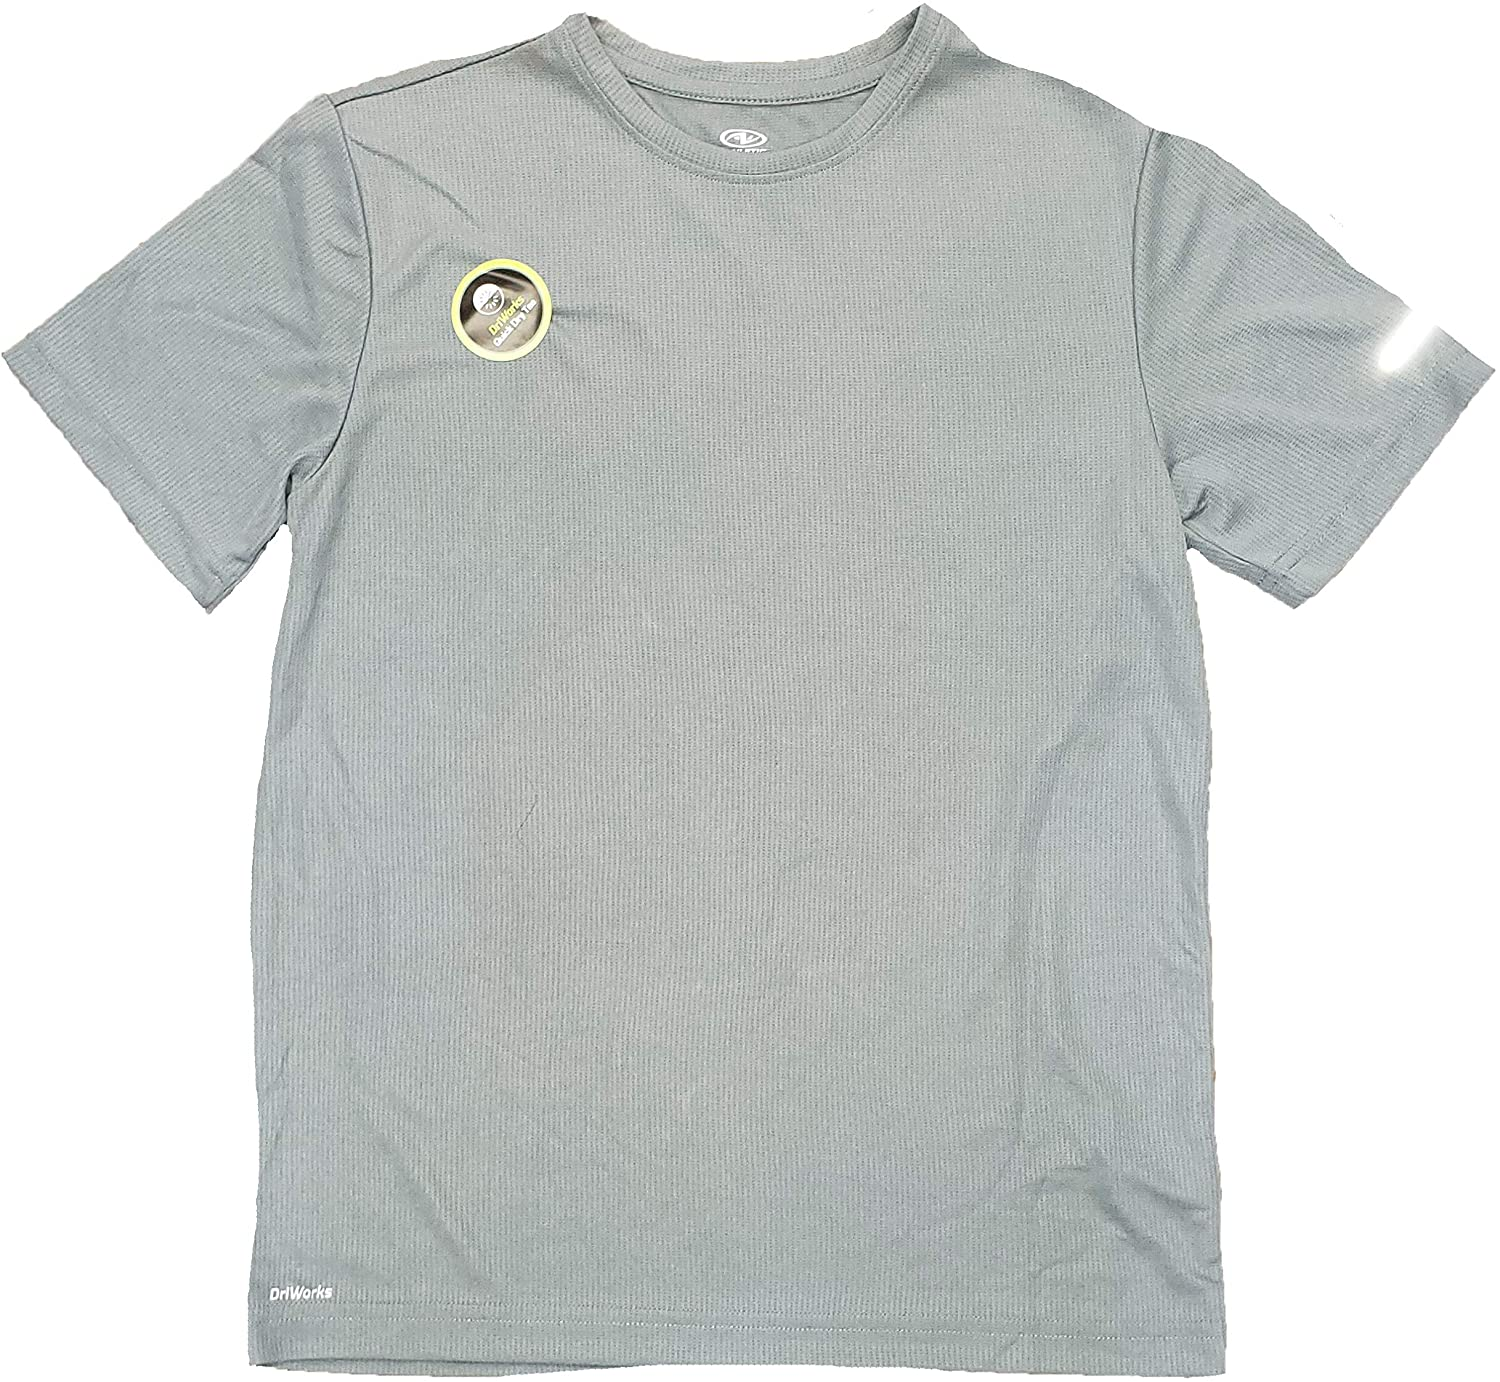 Athletic Works Gray Flannel Active Moisture Wicking Performance Tee Shirt